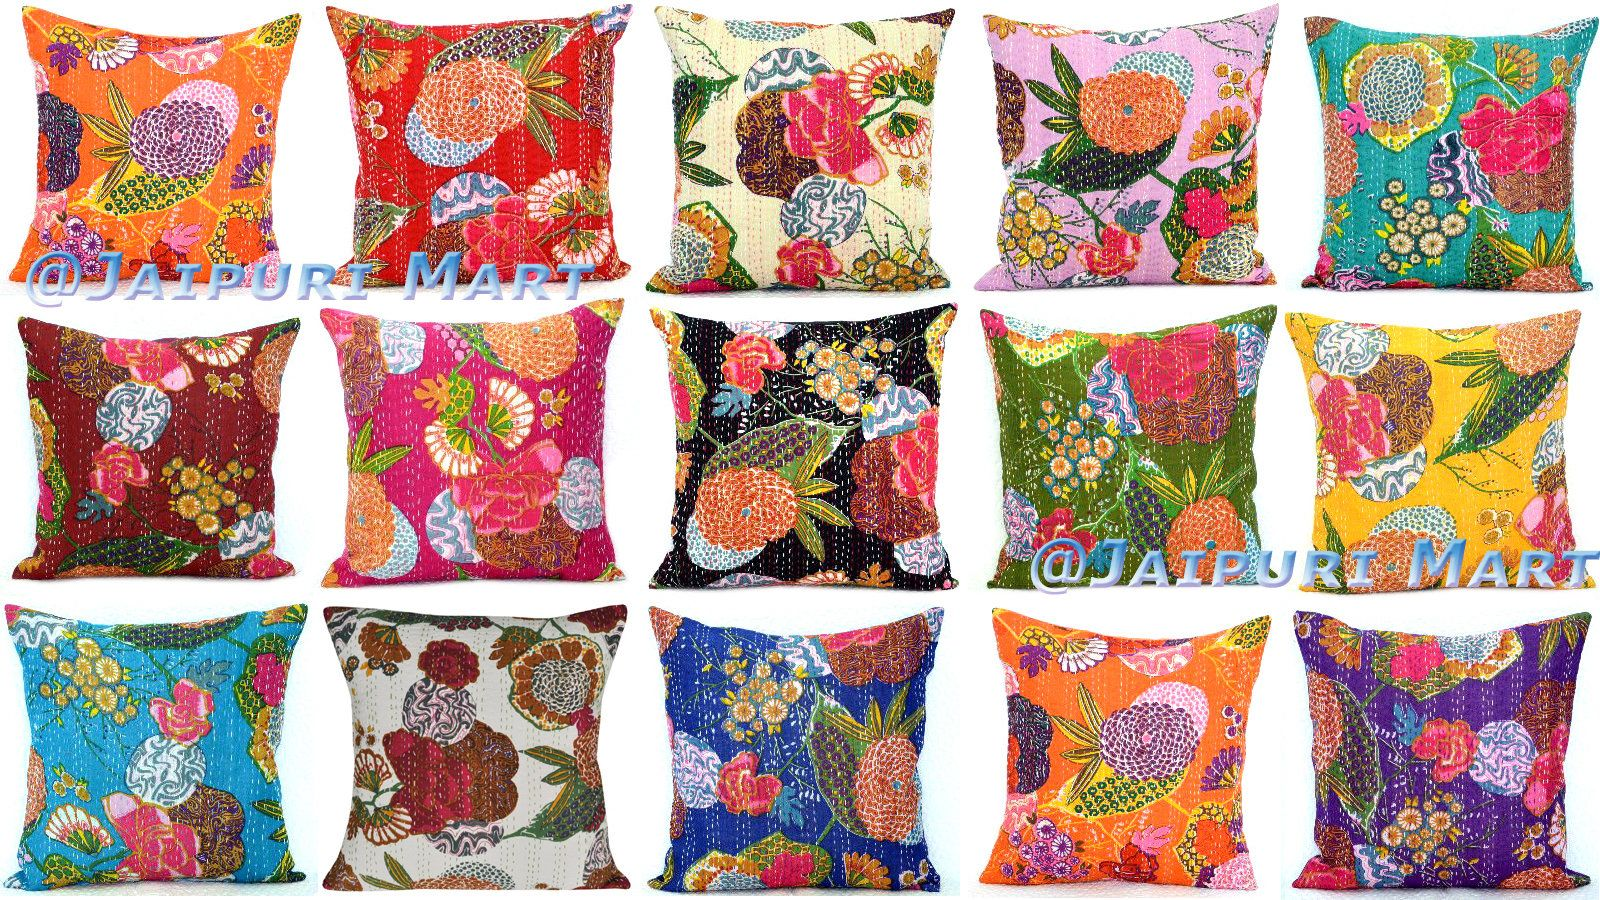 Boho Cotton Pillow Cover Green 24 x 24 Vintage Patchwork Cushion Cover 1 Pc